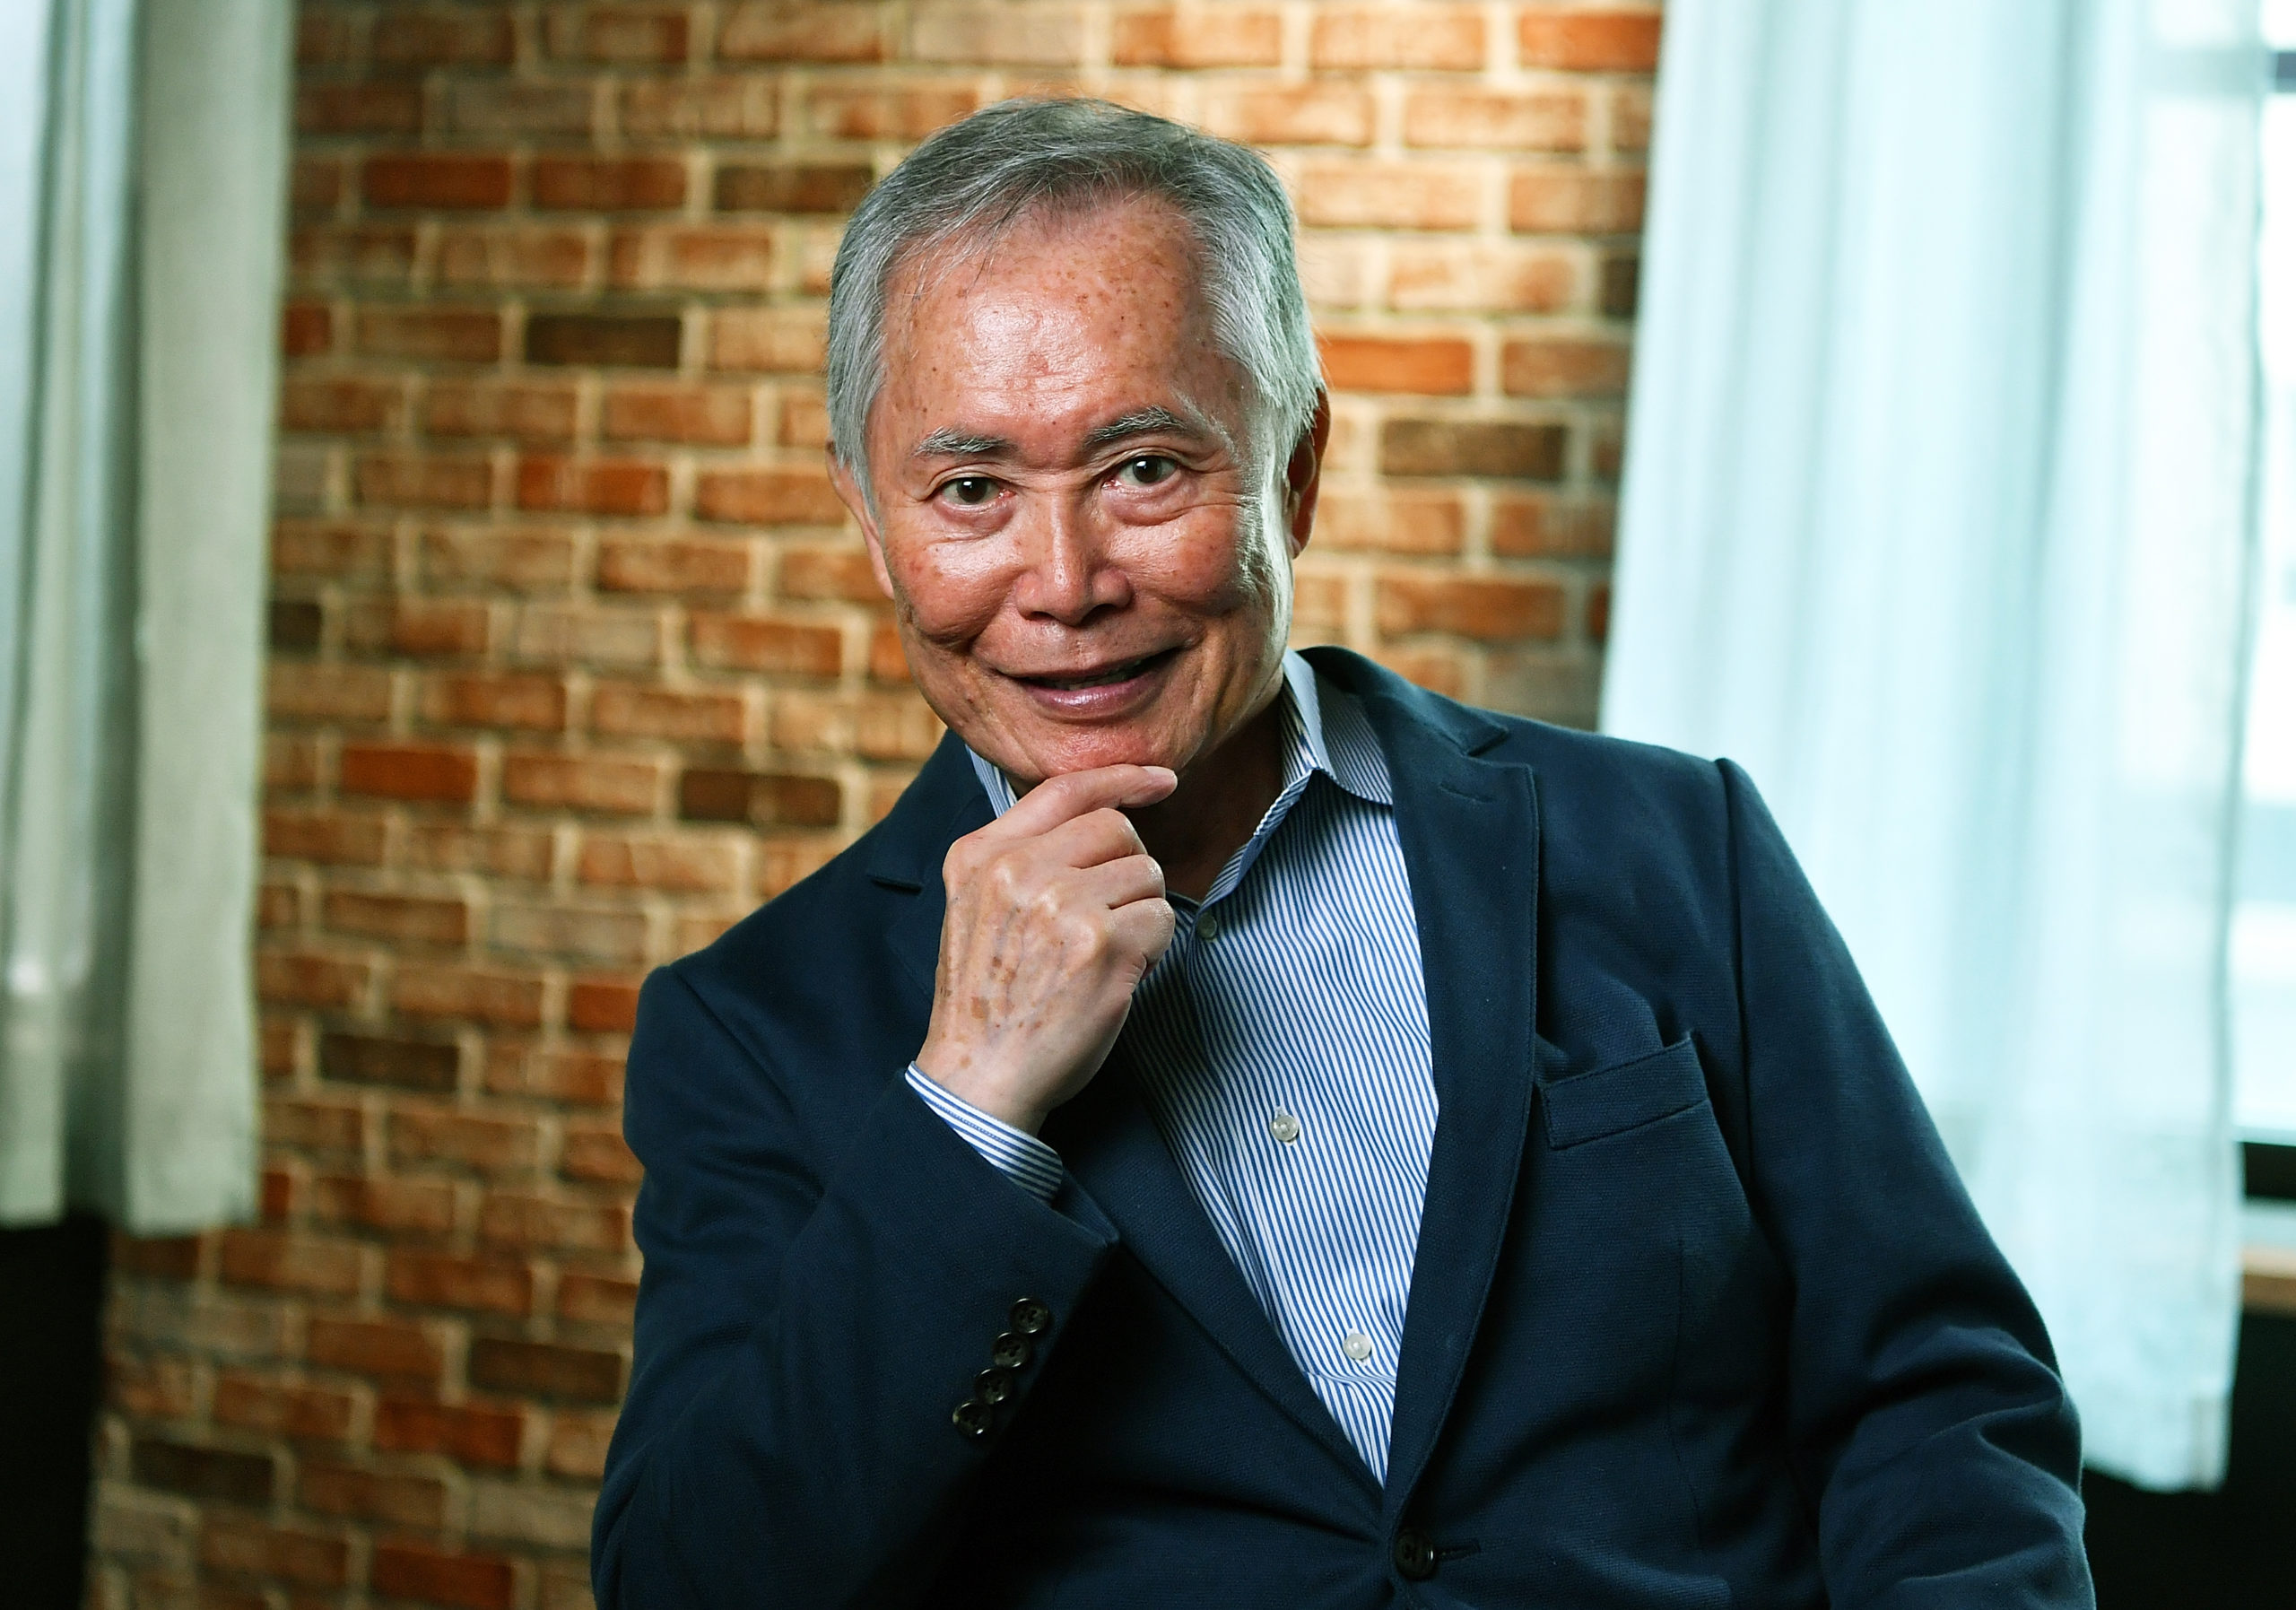 Star Trek legend George Takei is trying to convince right-wing bigots to stay home by claiming coronavirus turns people gay